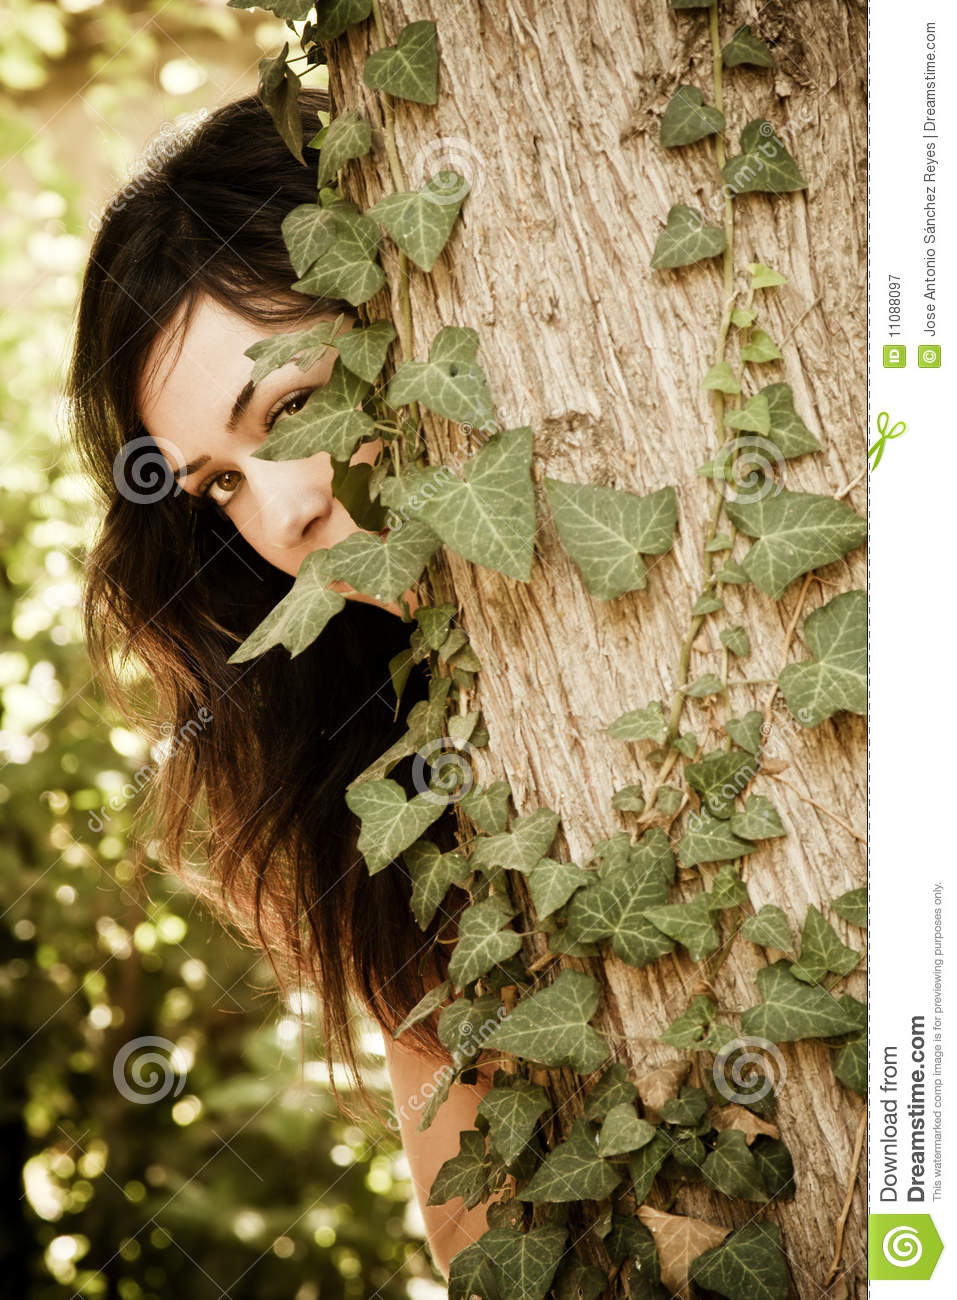 Woman behind leaves